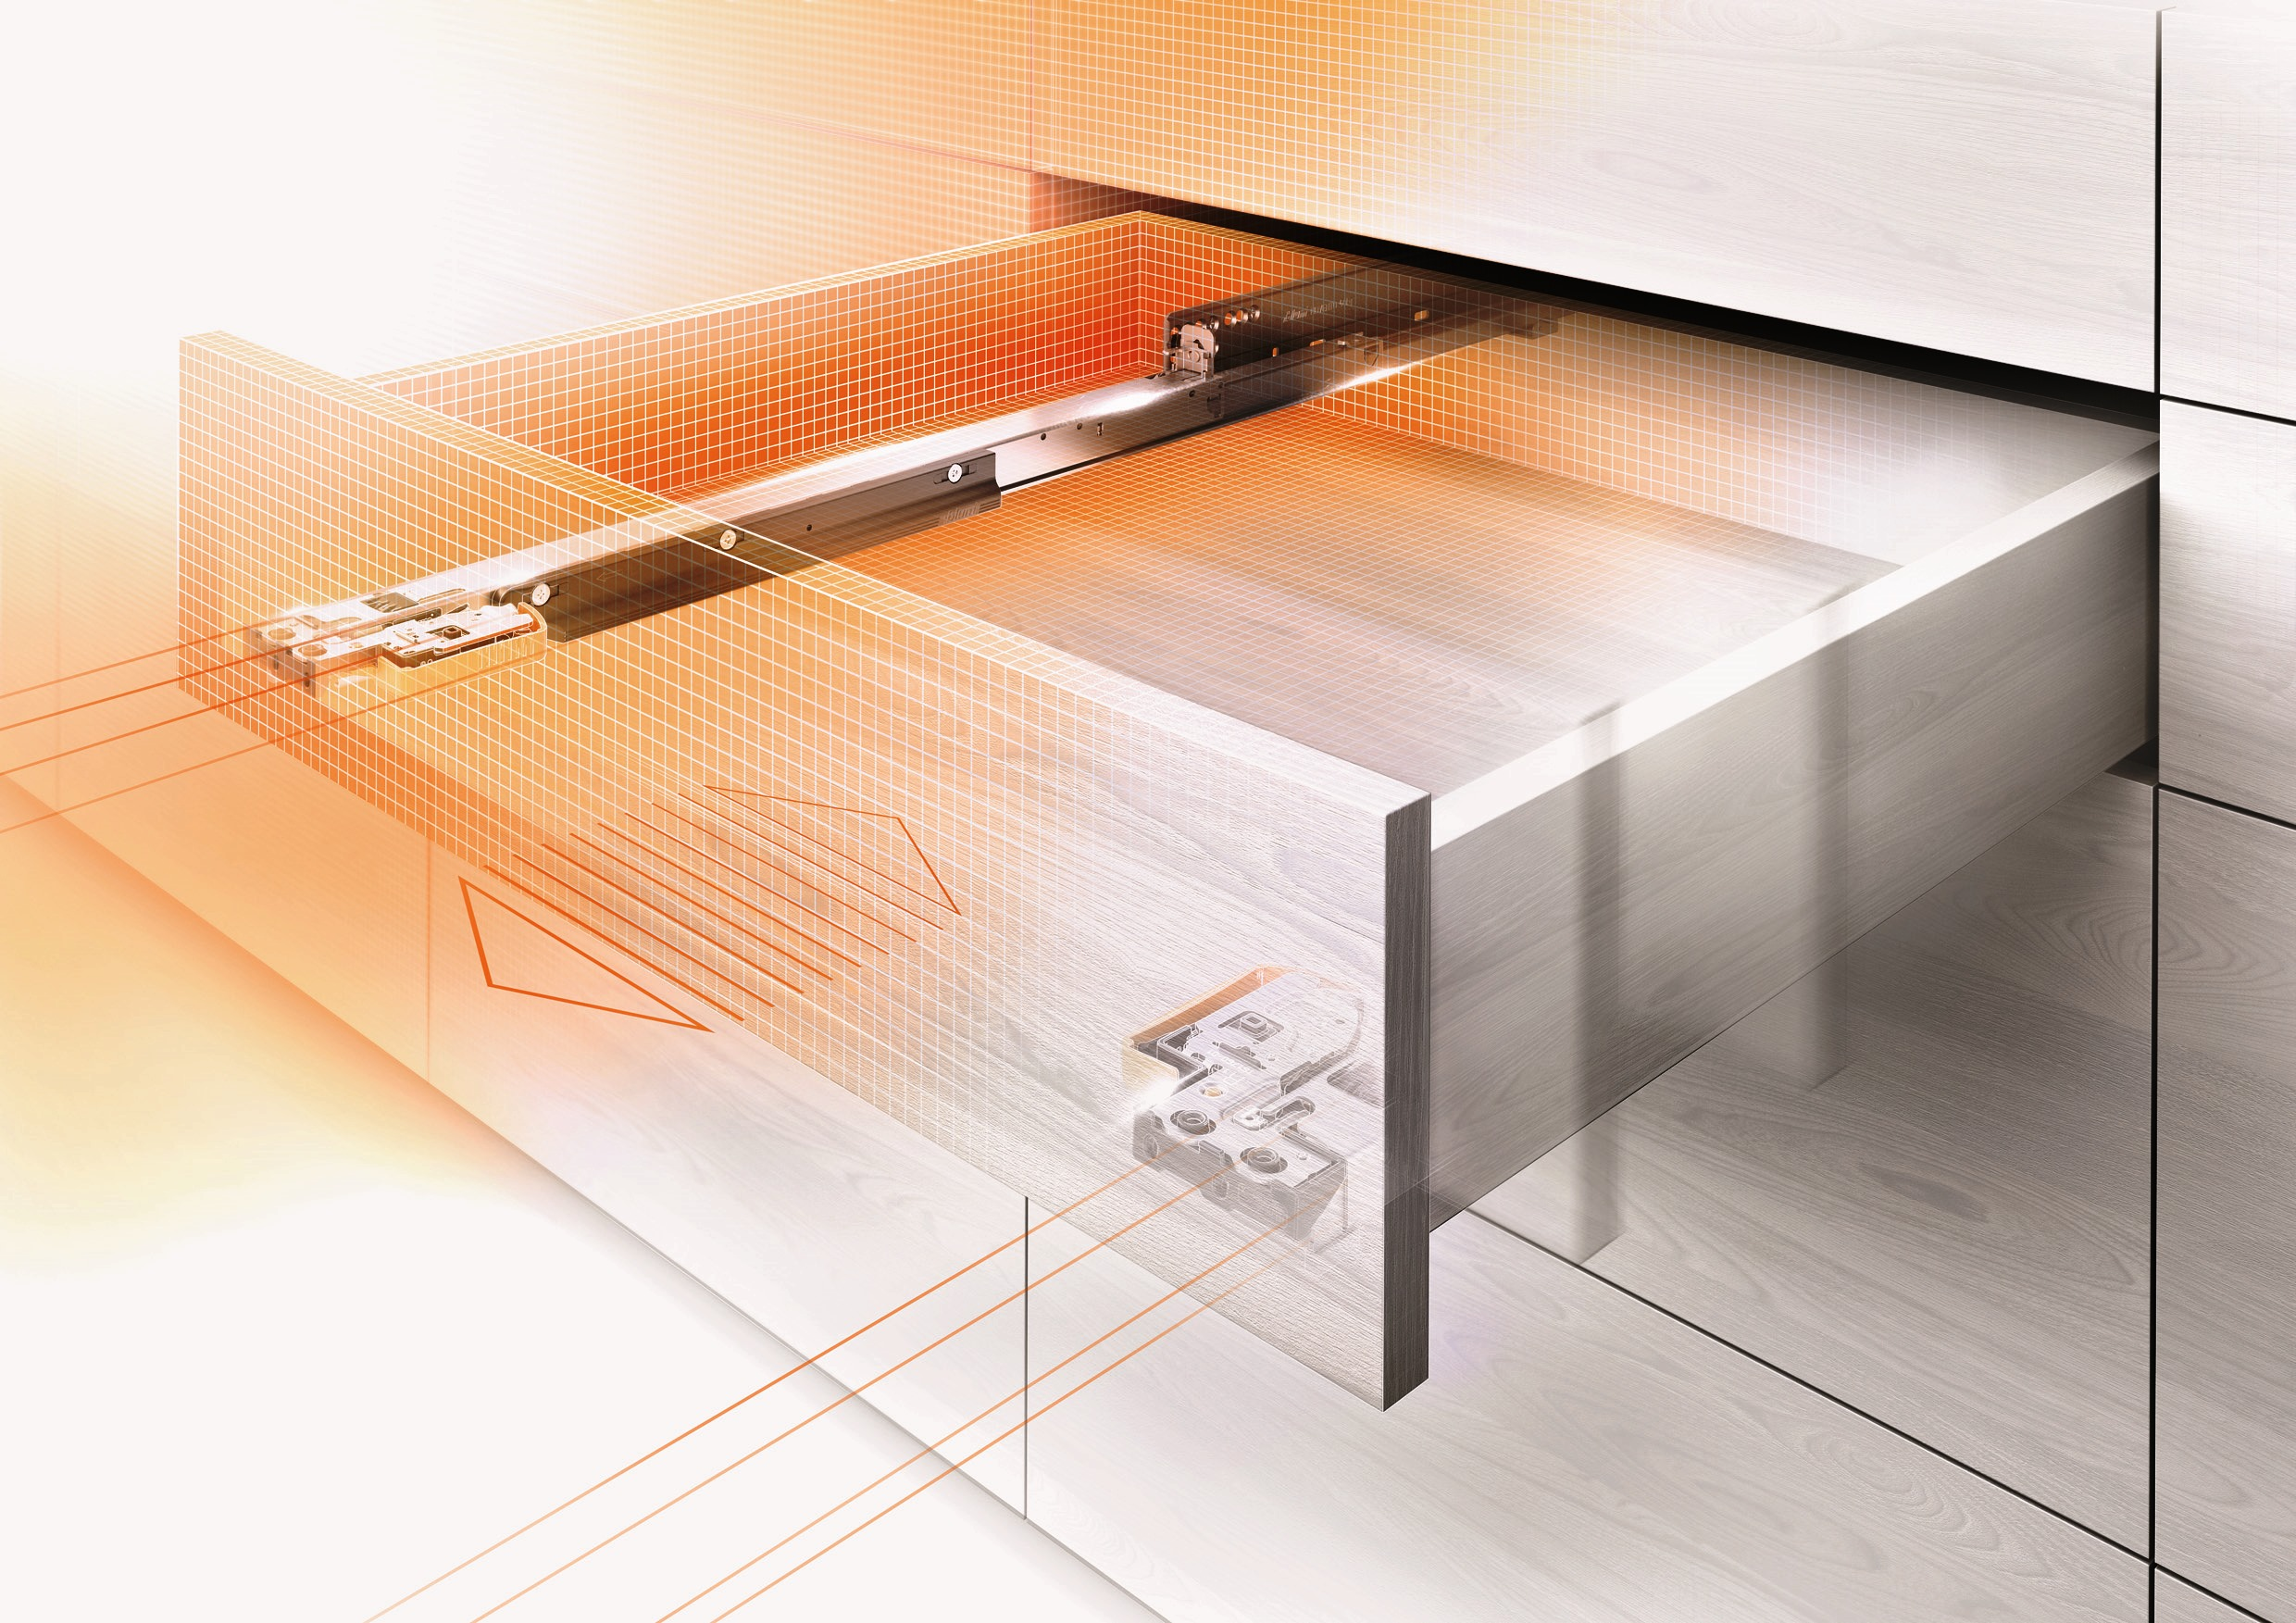 to slides is convert blum woodworking rolling possible sliding drawer wtmat frame a questions without it into